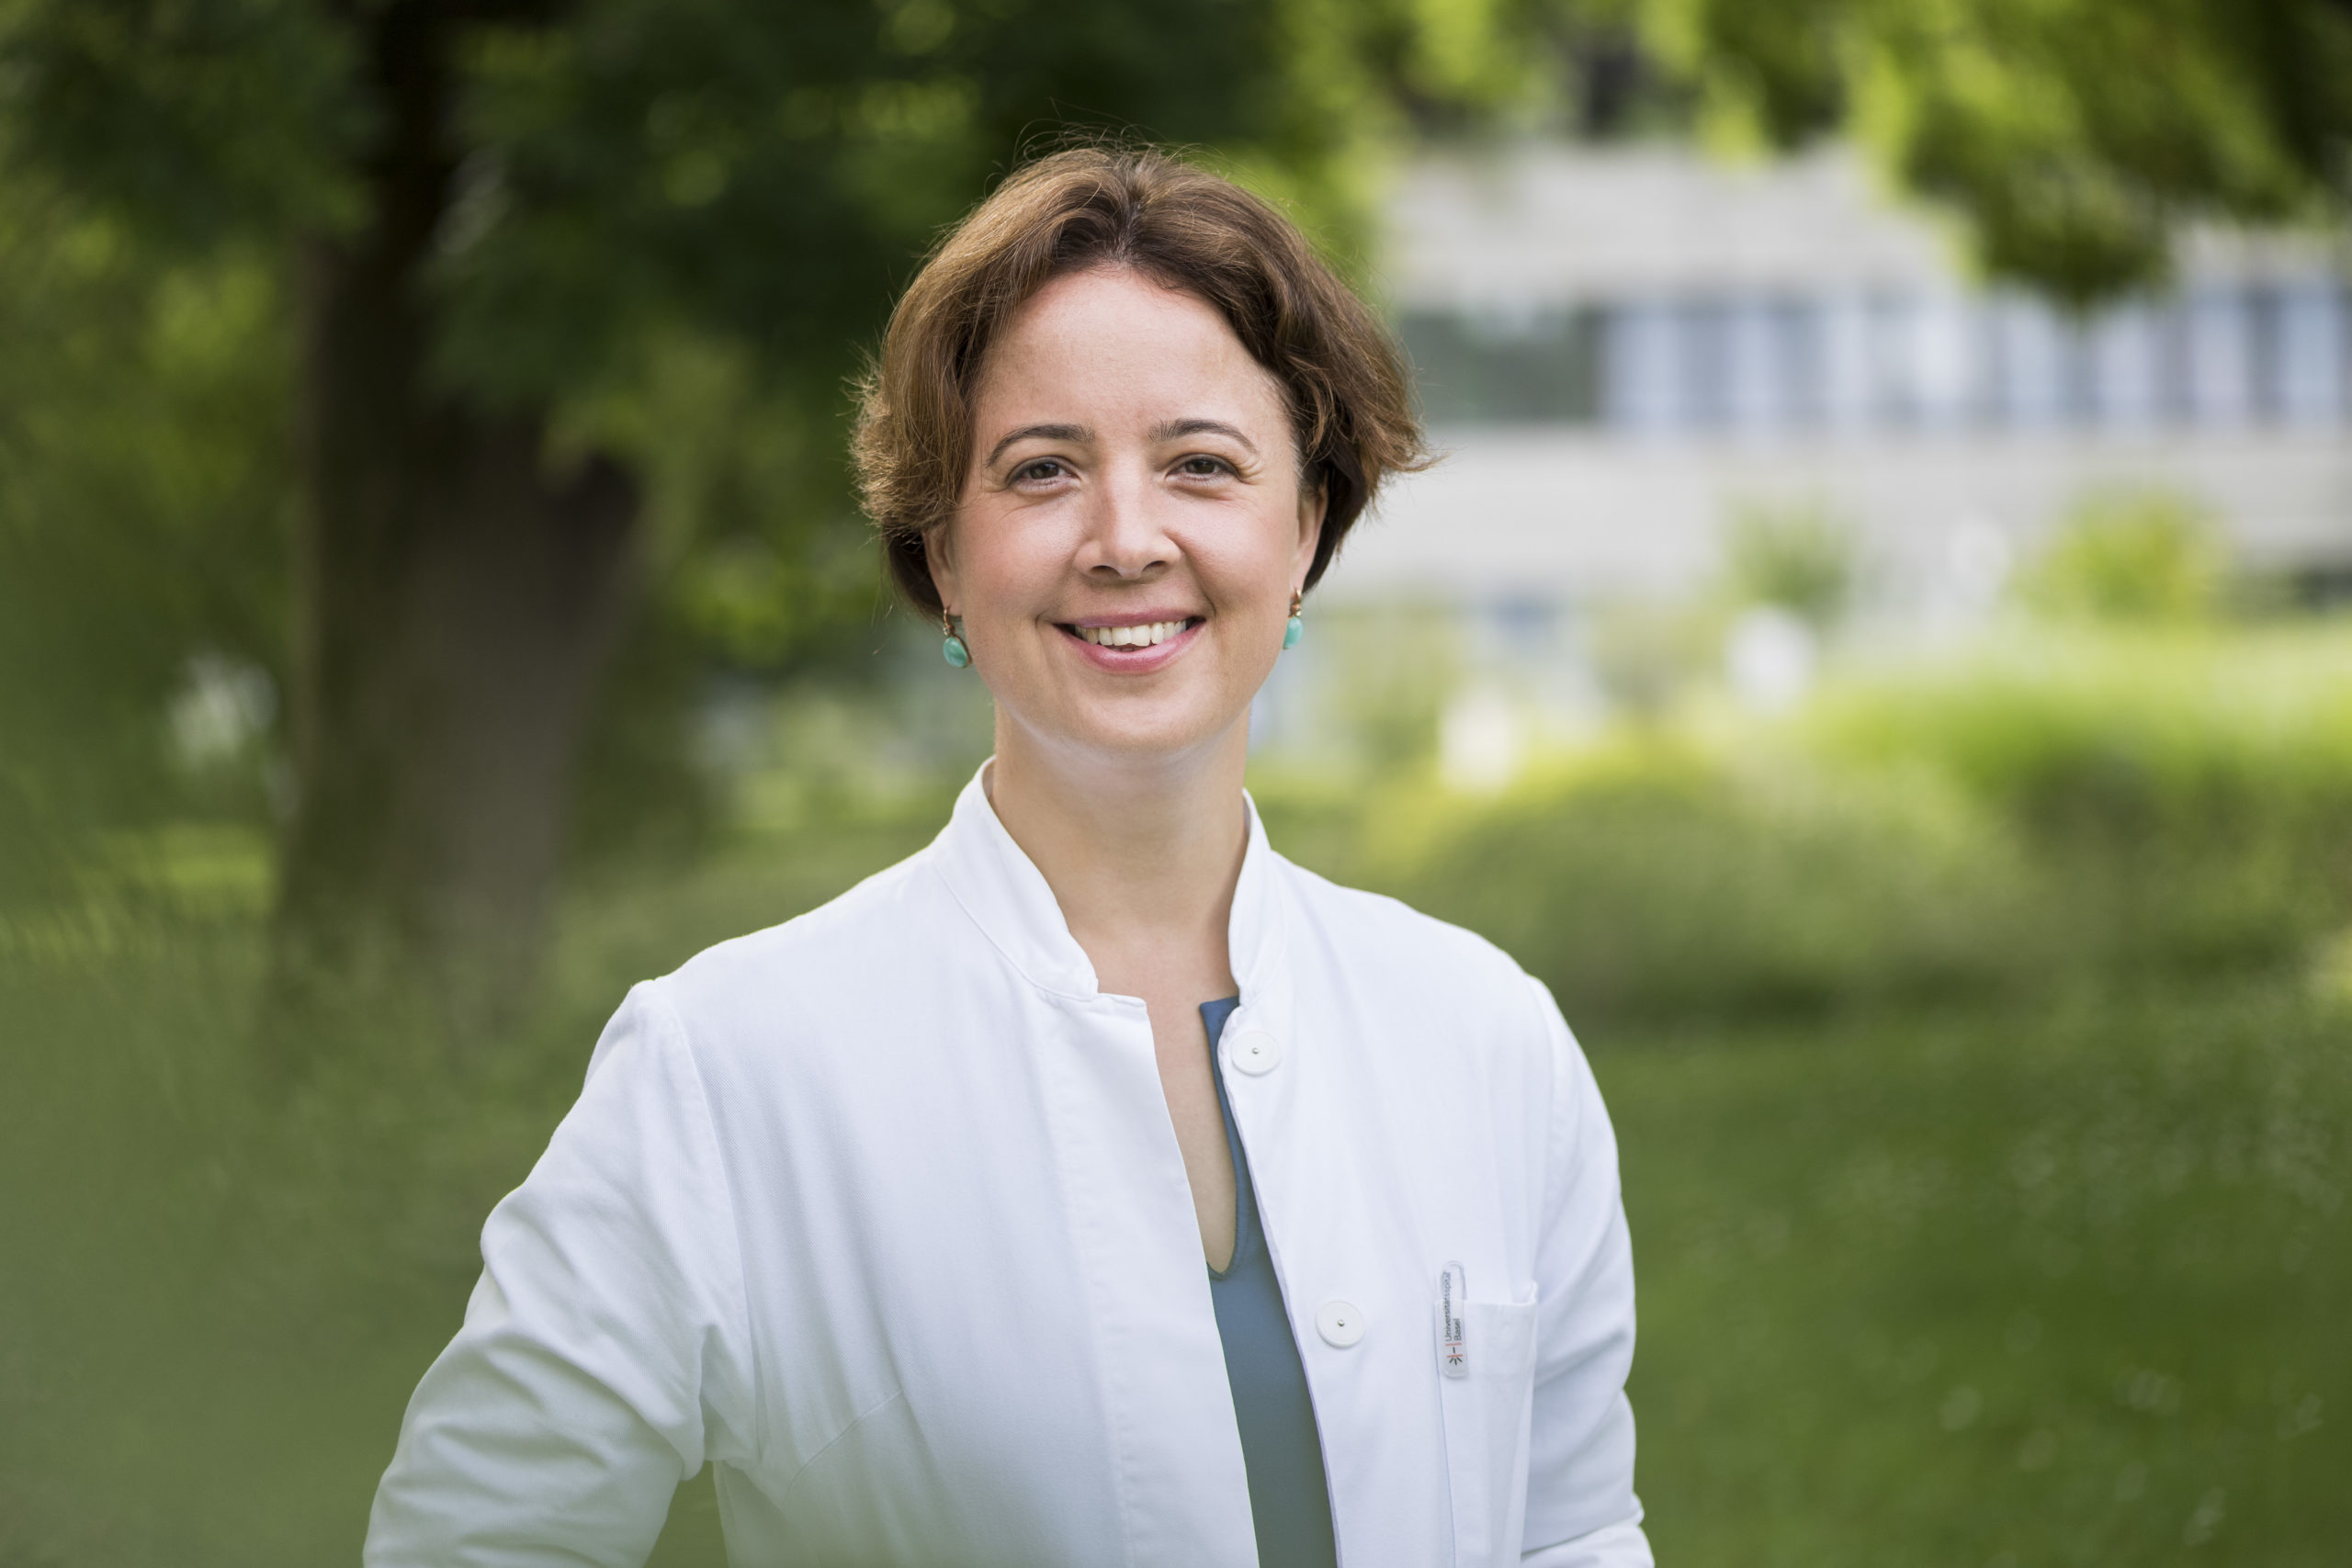 Dr. Rosemarie Burian, the Principal Investigator of the NANO Study